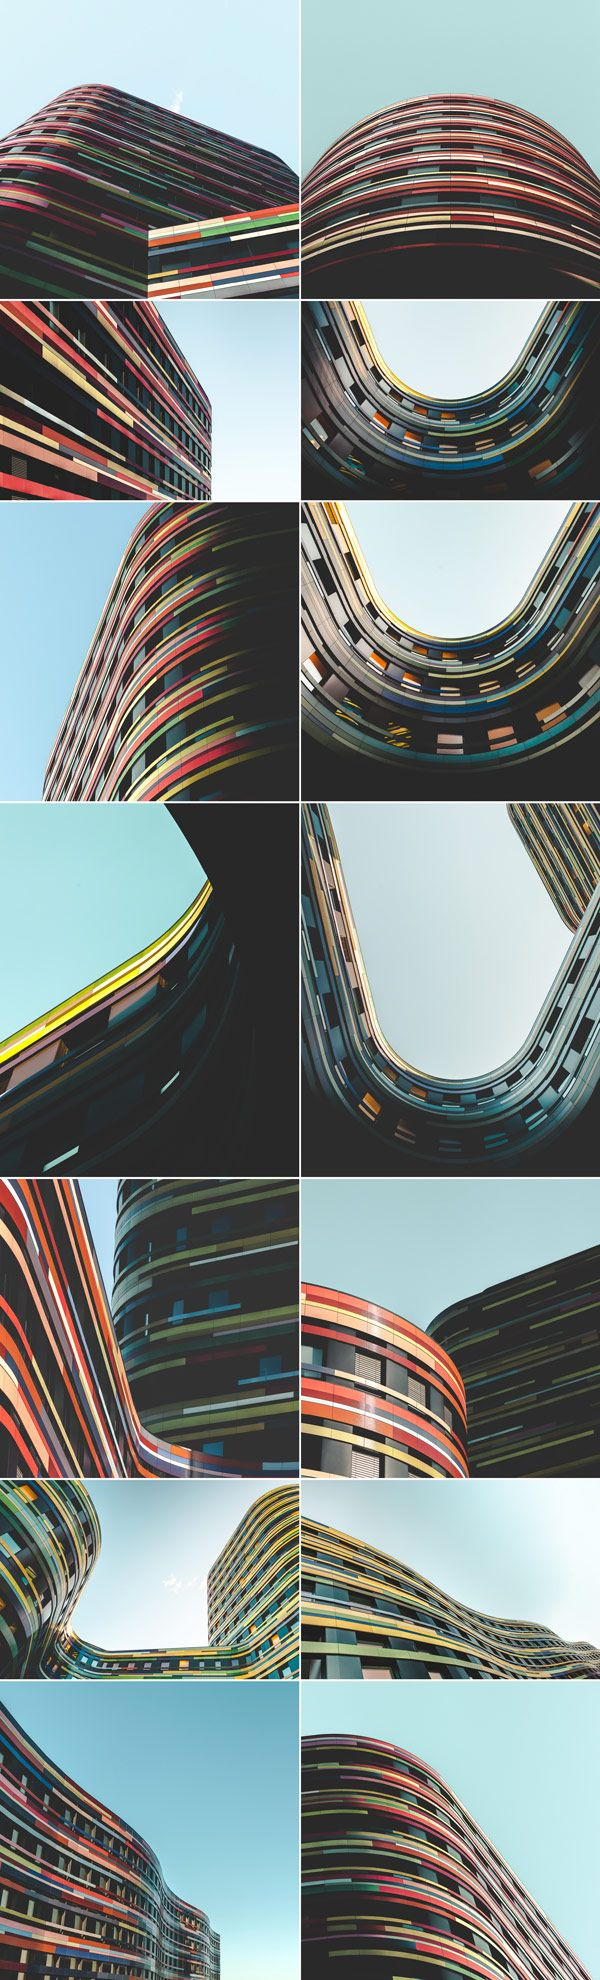 The German photographer Lars Focke has taken several close-ups in the different points of view to document this unique architecture.